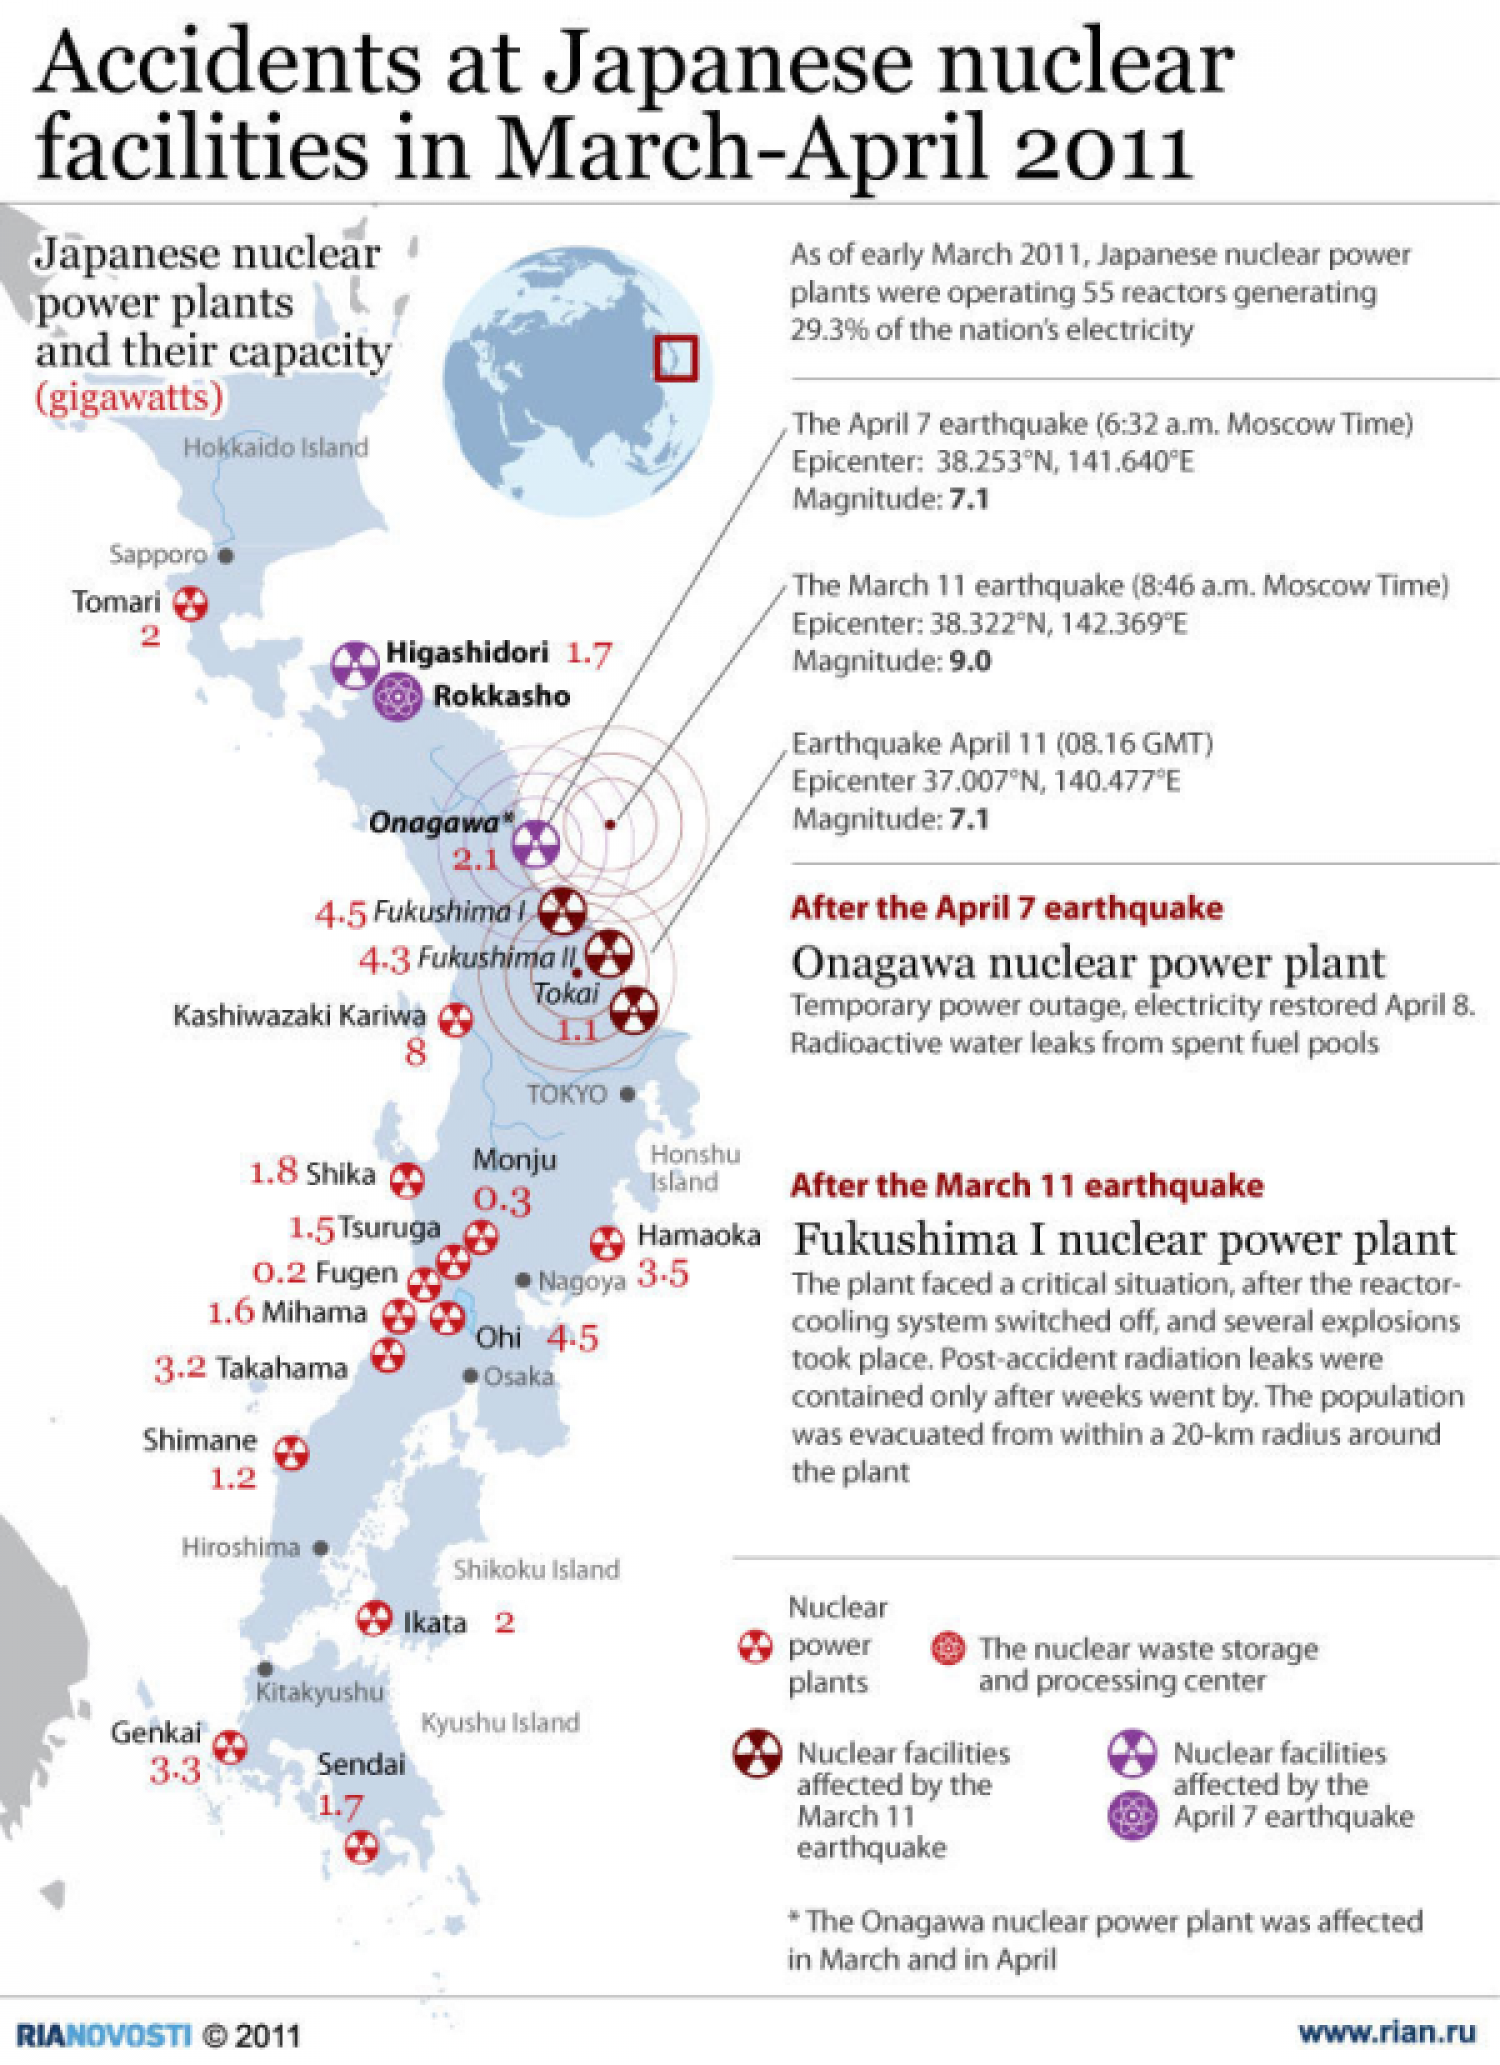 Accidents in Japanese Nuclear Facilities Infographic